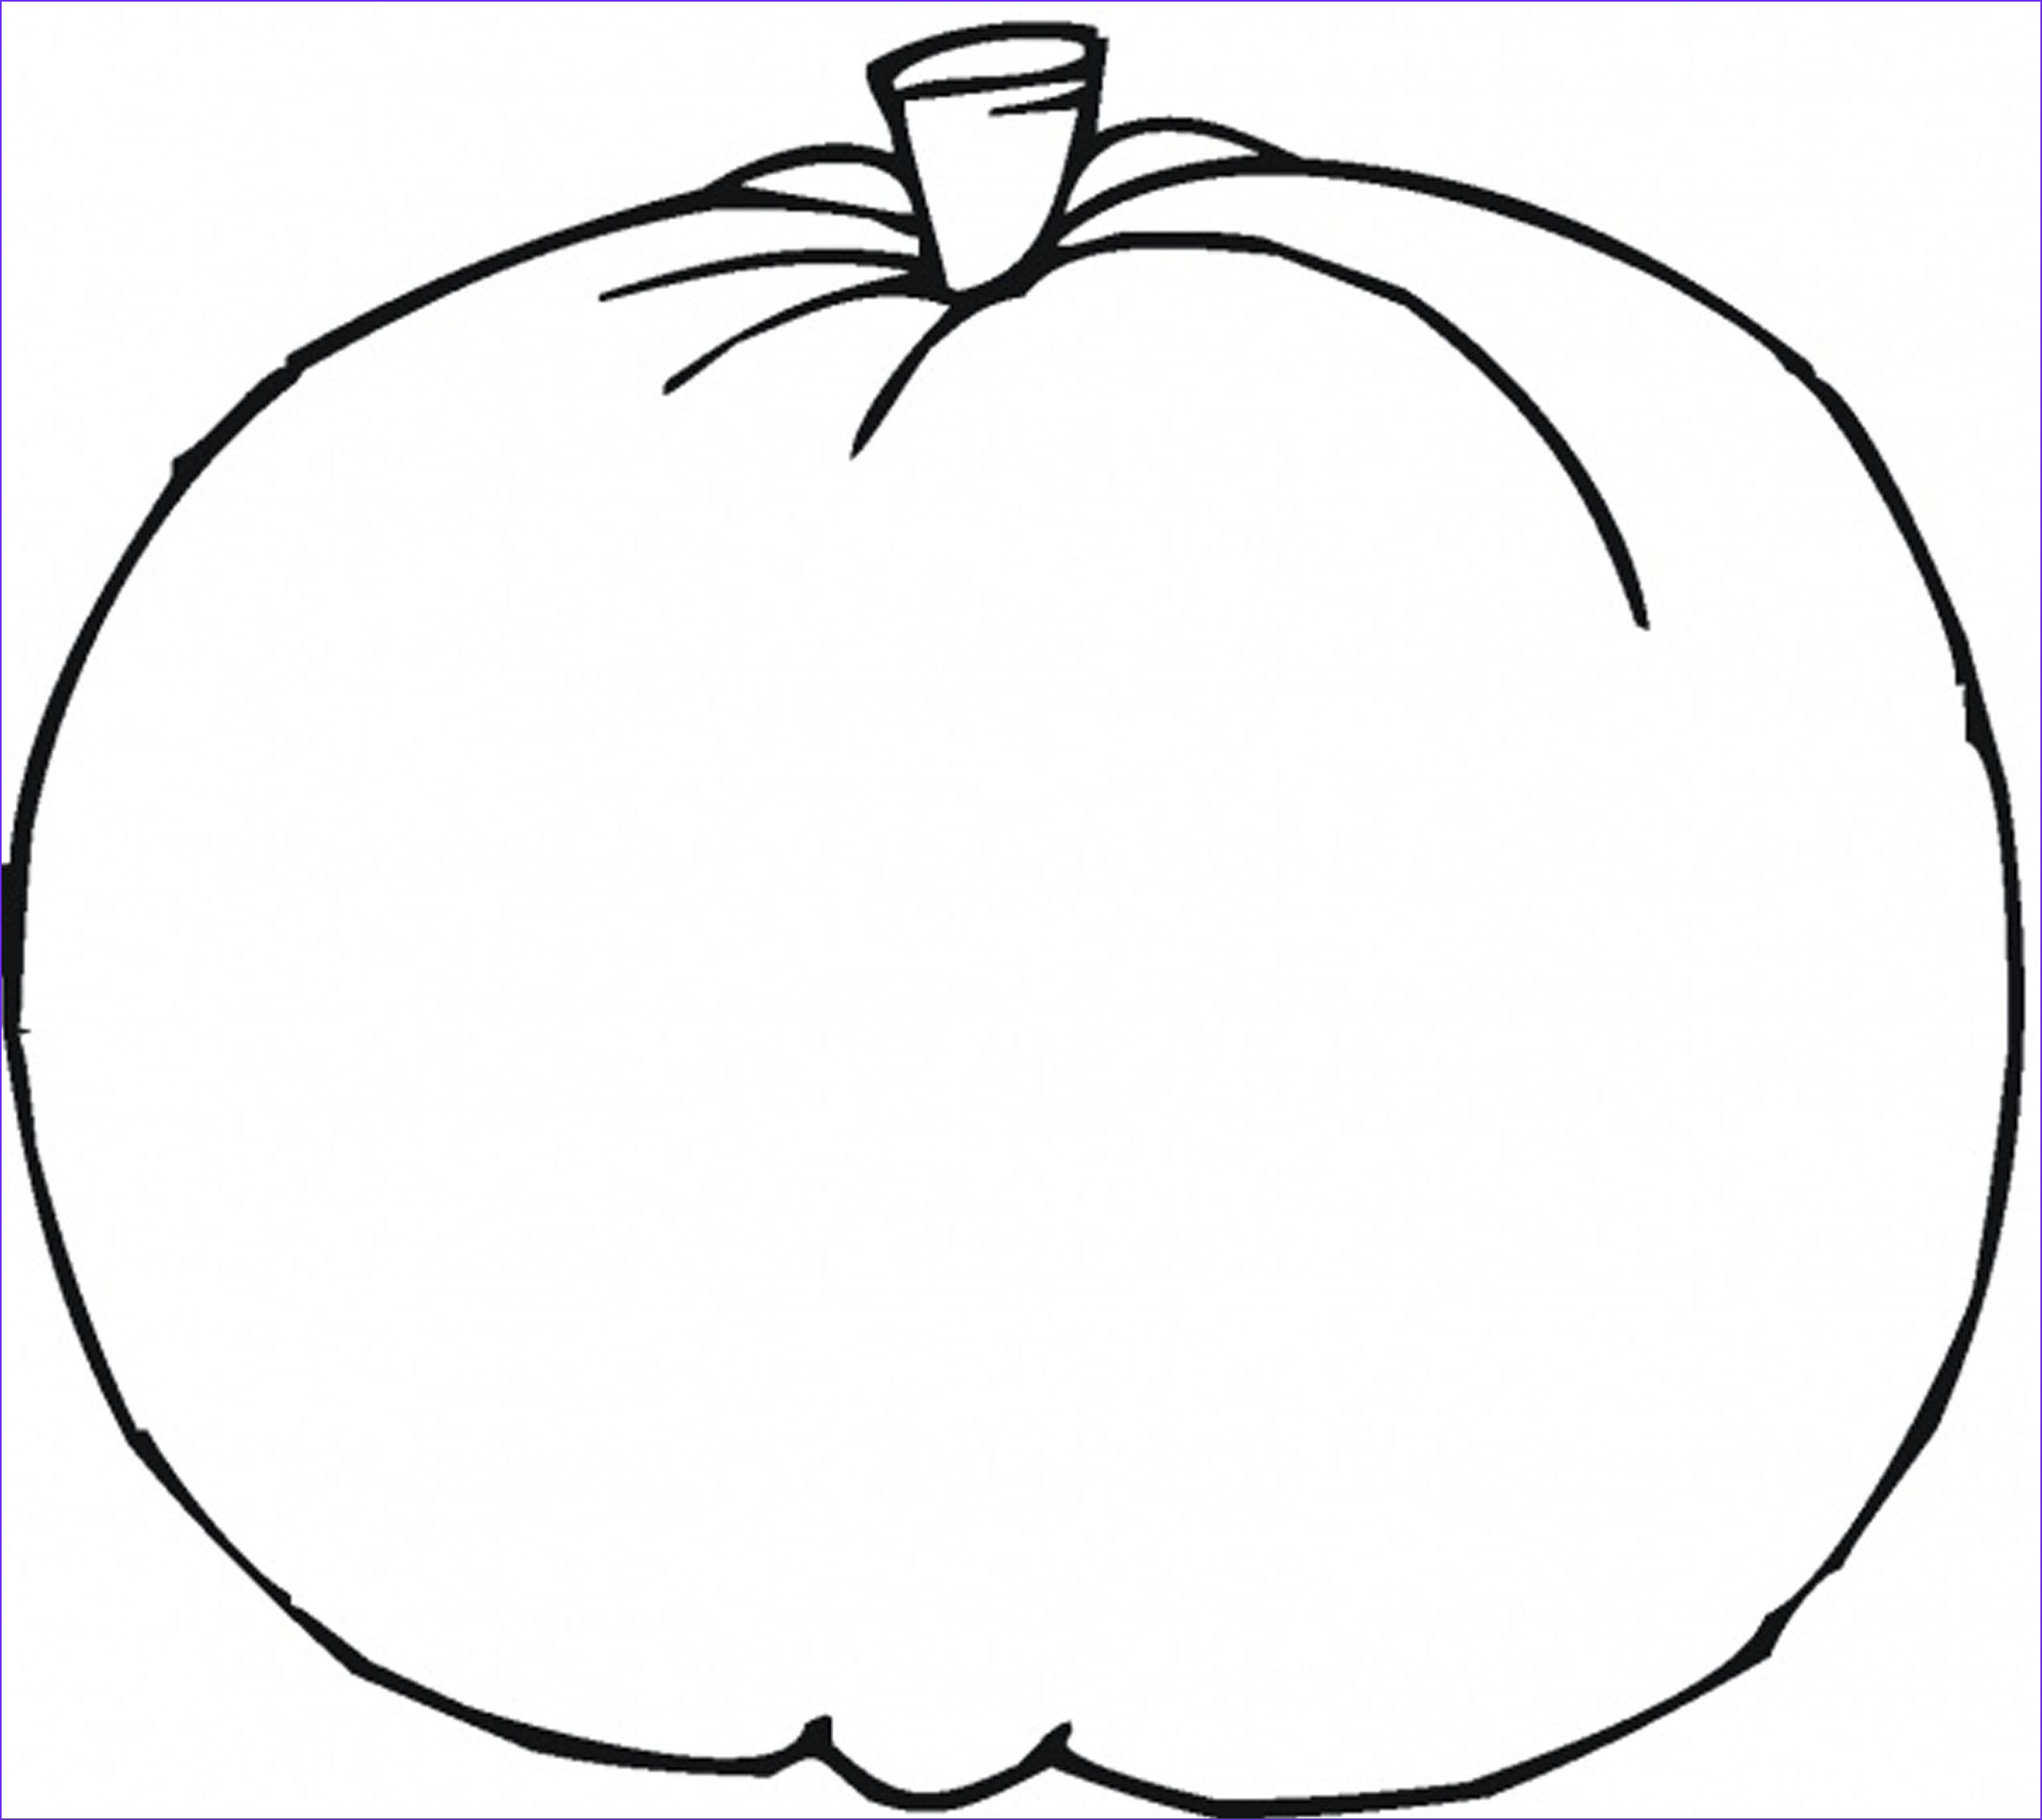 Pumpkin Coloring Pages Cool Image Blank Pumpkin Template Coloring Home